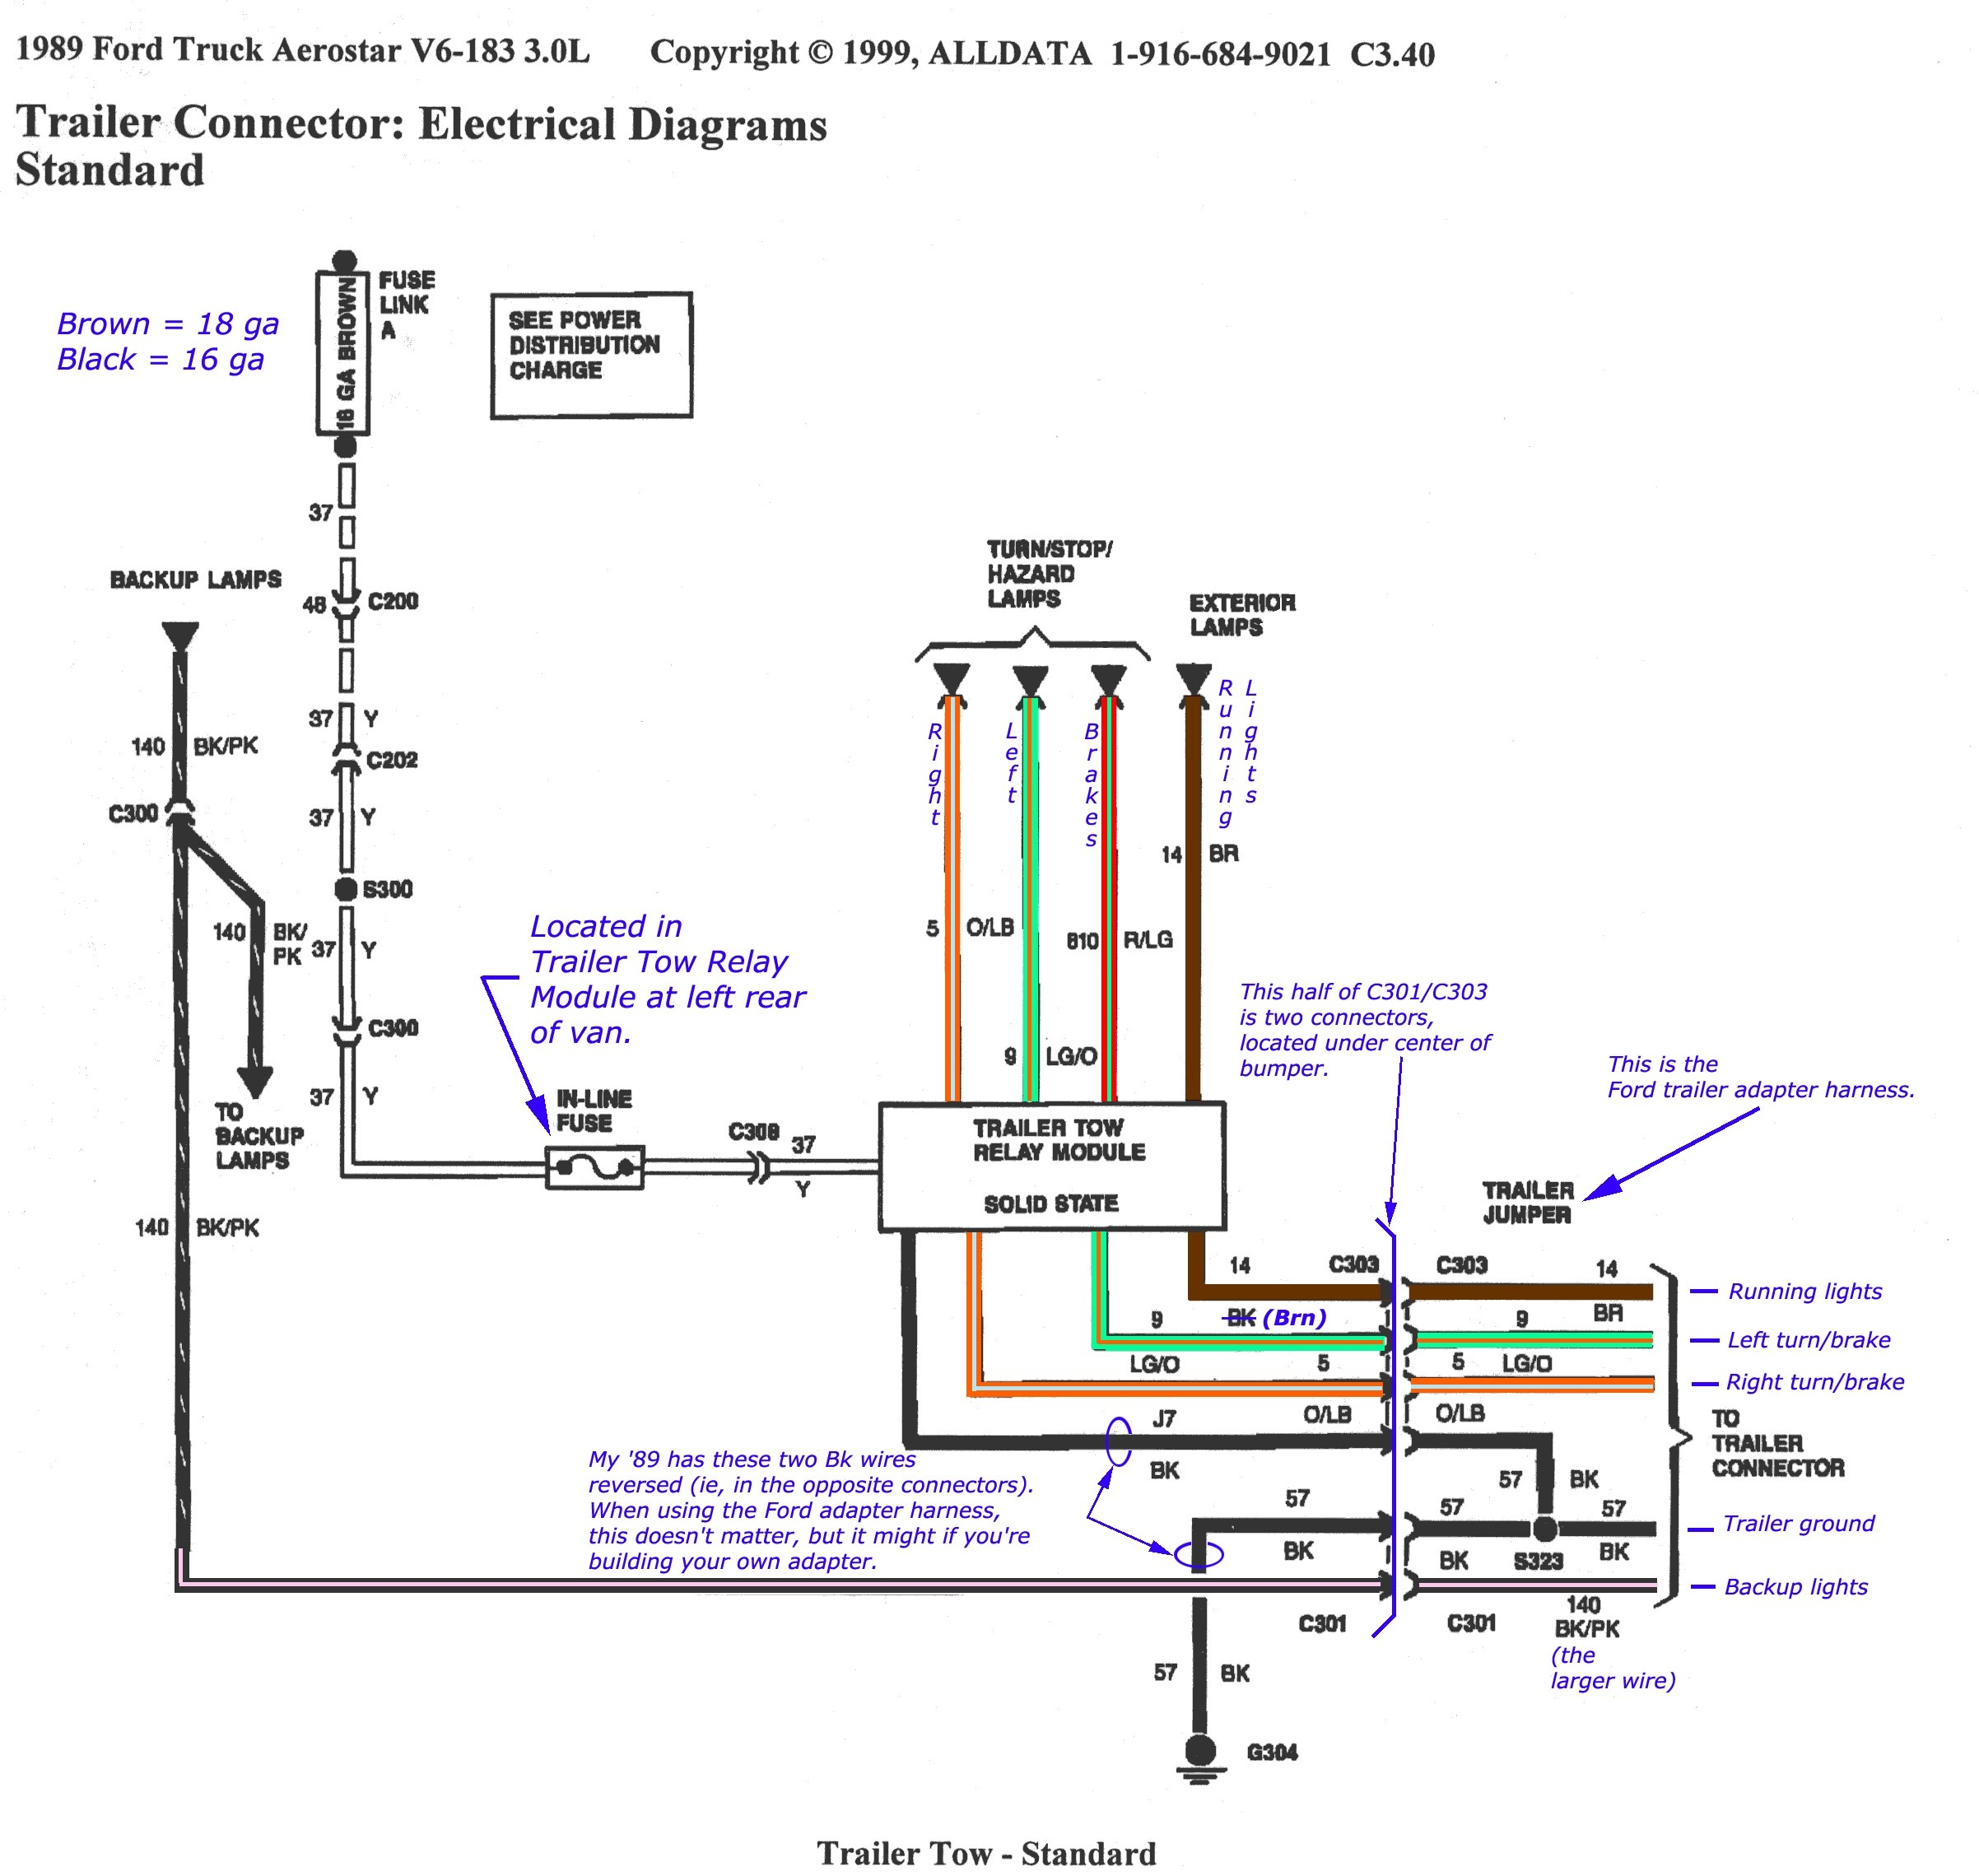 Nema L14 20p Wiring Diagram | Wiring Liry Nema L P Wiring Diagram Free Download on